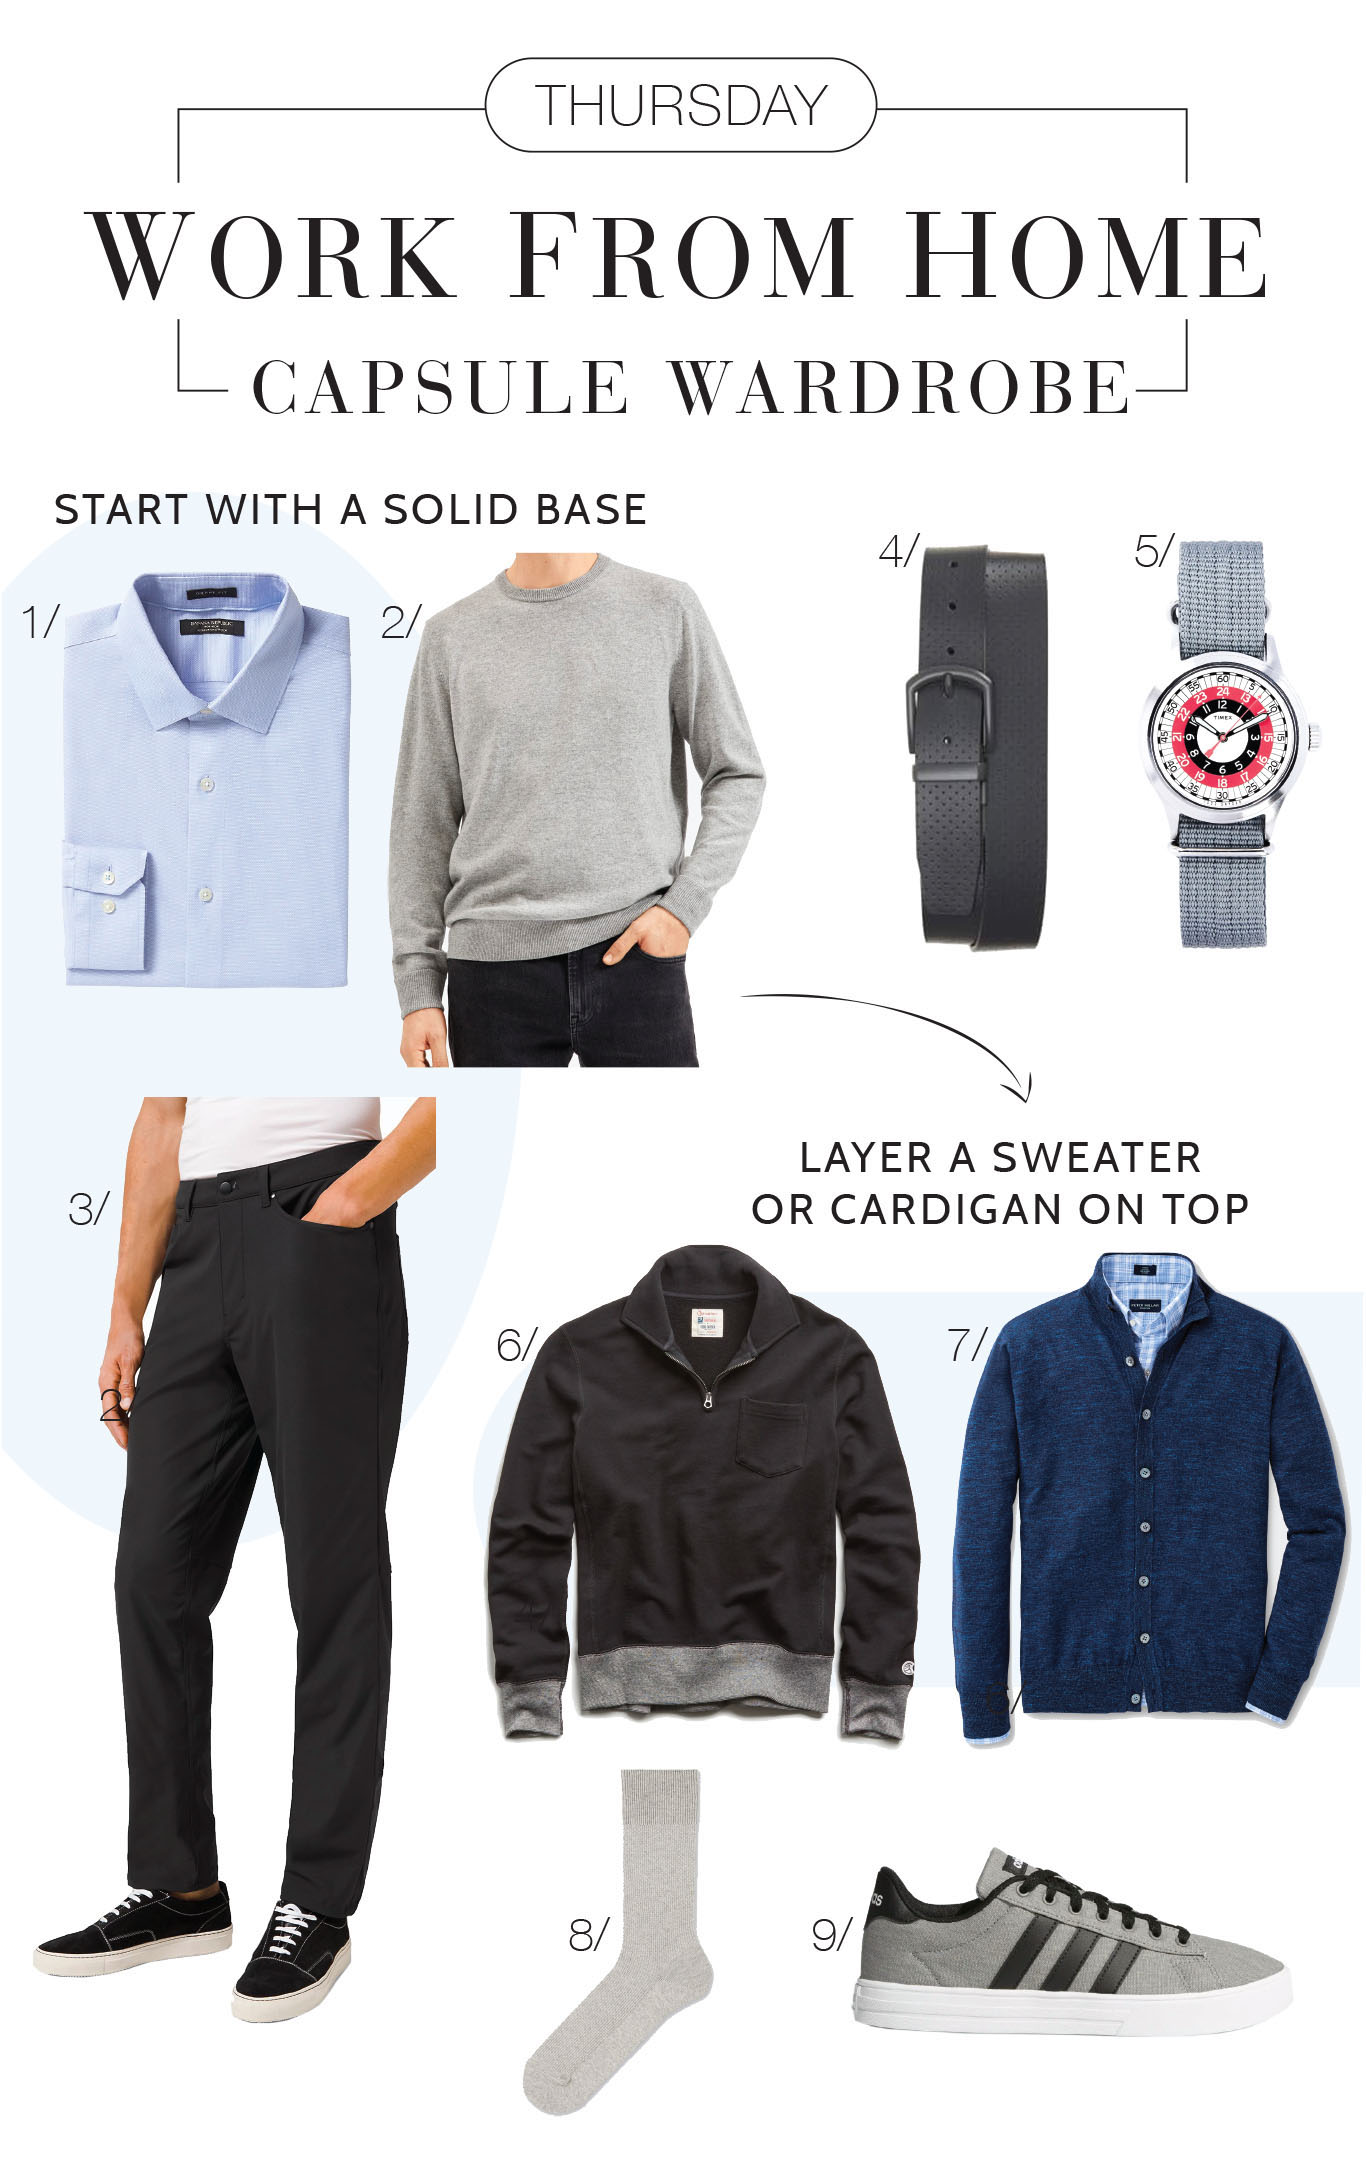 A Dress For The Job You Have/Want #StayAtHome Quarantine Edition –for men. Our work from home capsule wardrobe for all 7 days, to please everyone in the house.